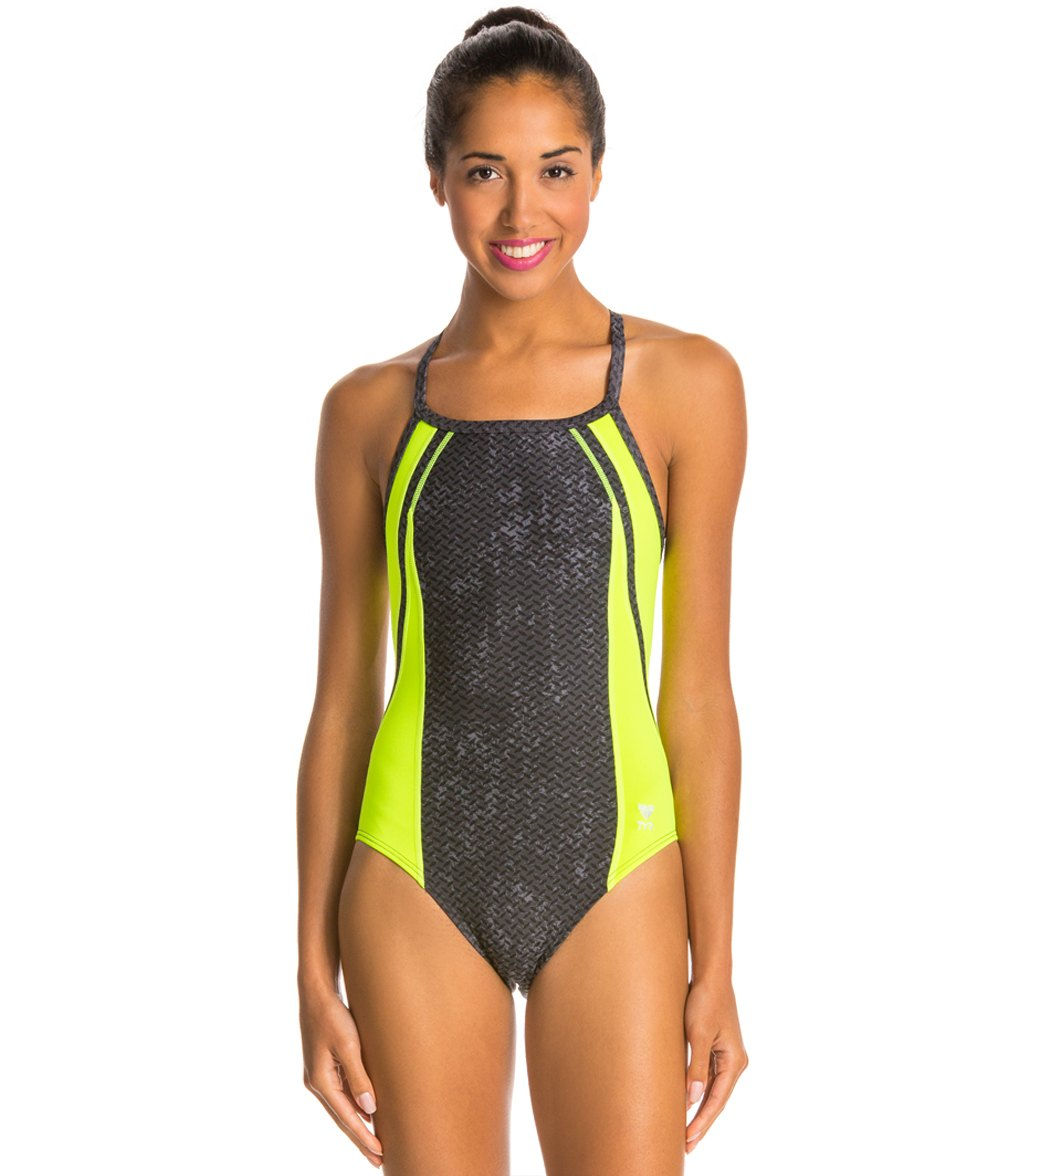 TYR Viper Diamondfit One Piece Swimsuit at SwimOutlet.com - Free Shipping